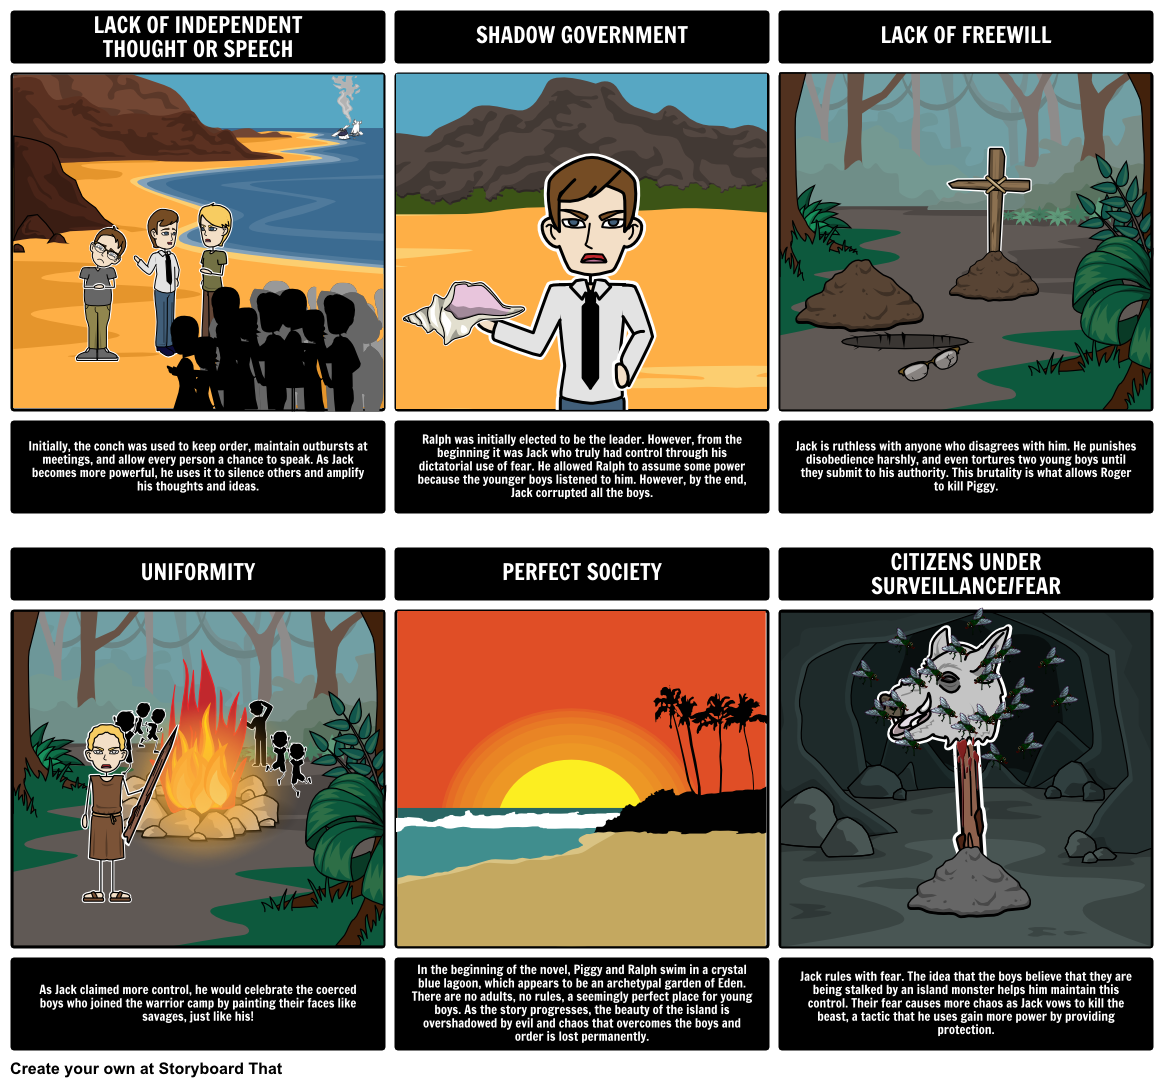 Pin By Storyboard That On Storyboard That